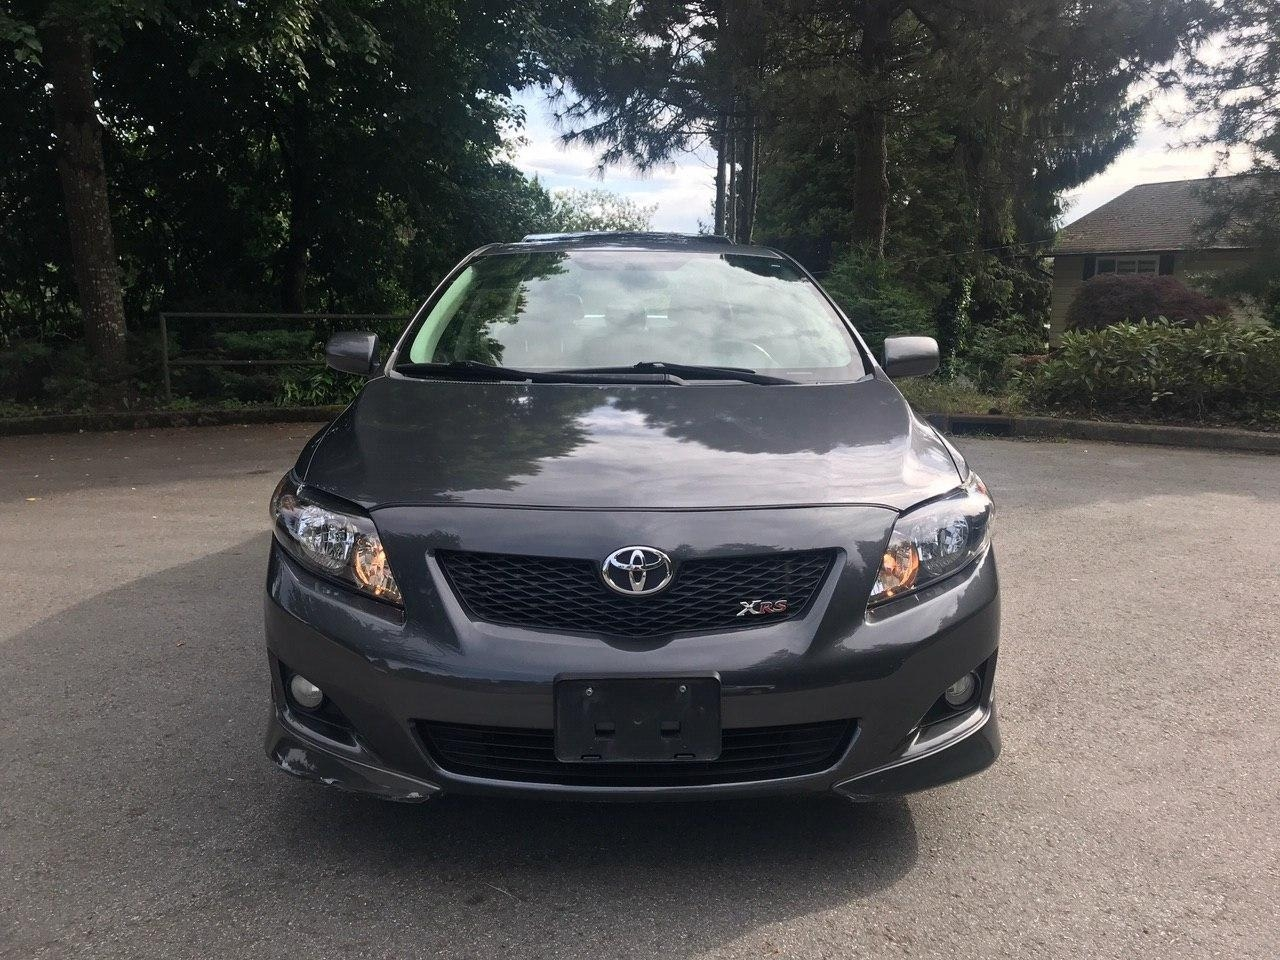 2010 Toyota Corolla Xrs 4dr Auto Local Leather Sunroof Alpha Auto Access Ltd Dealership In Burnaby